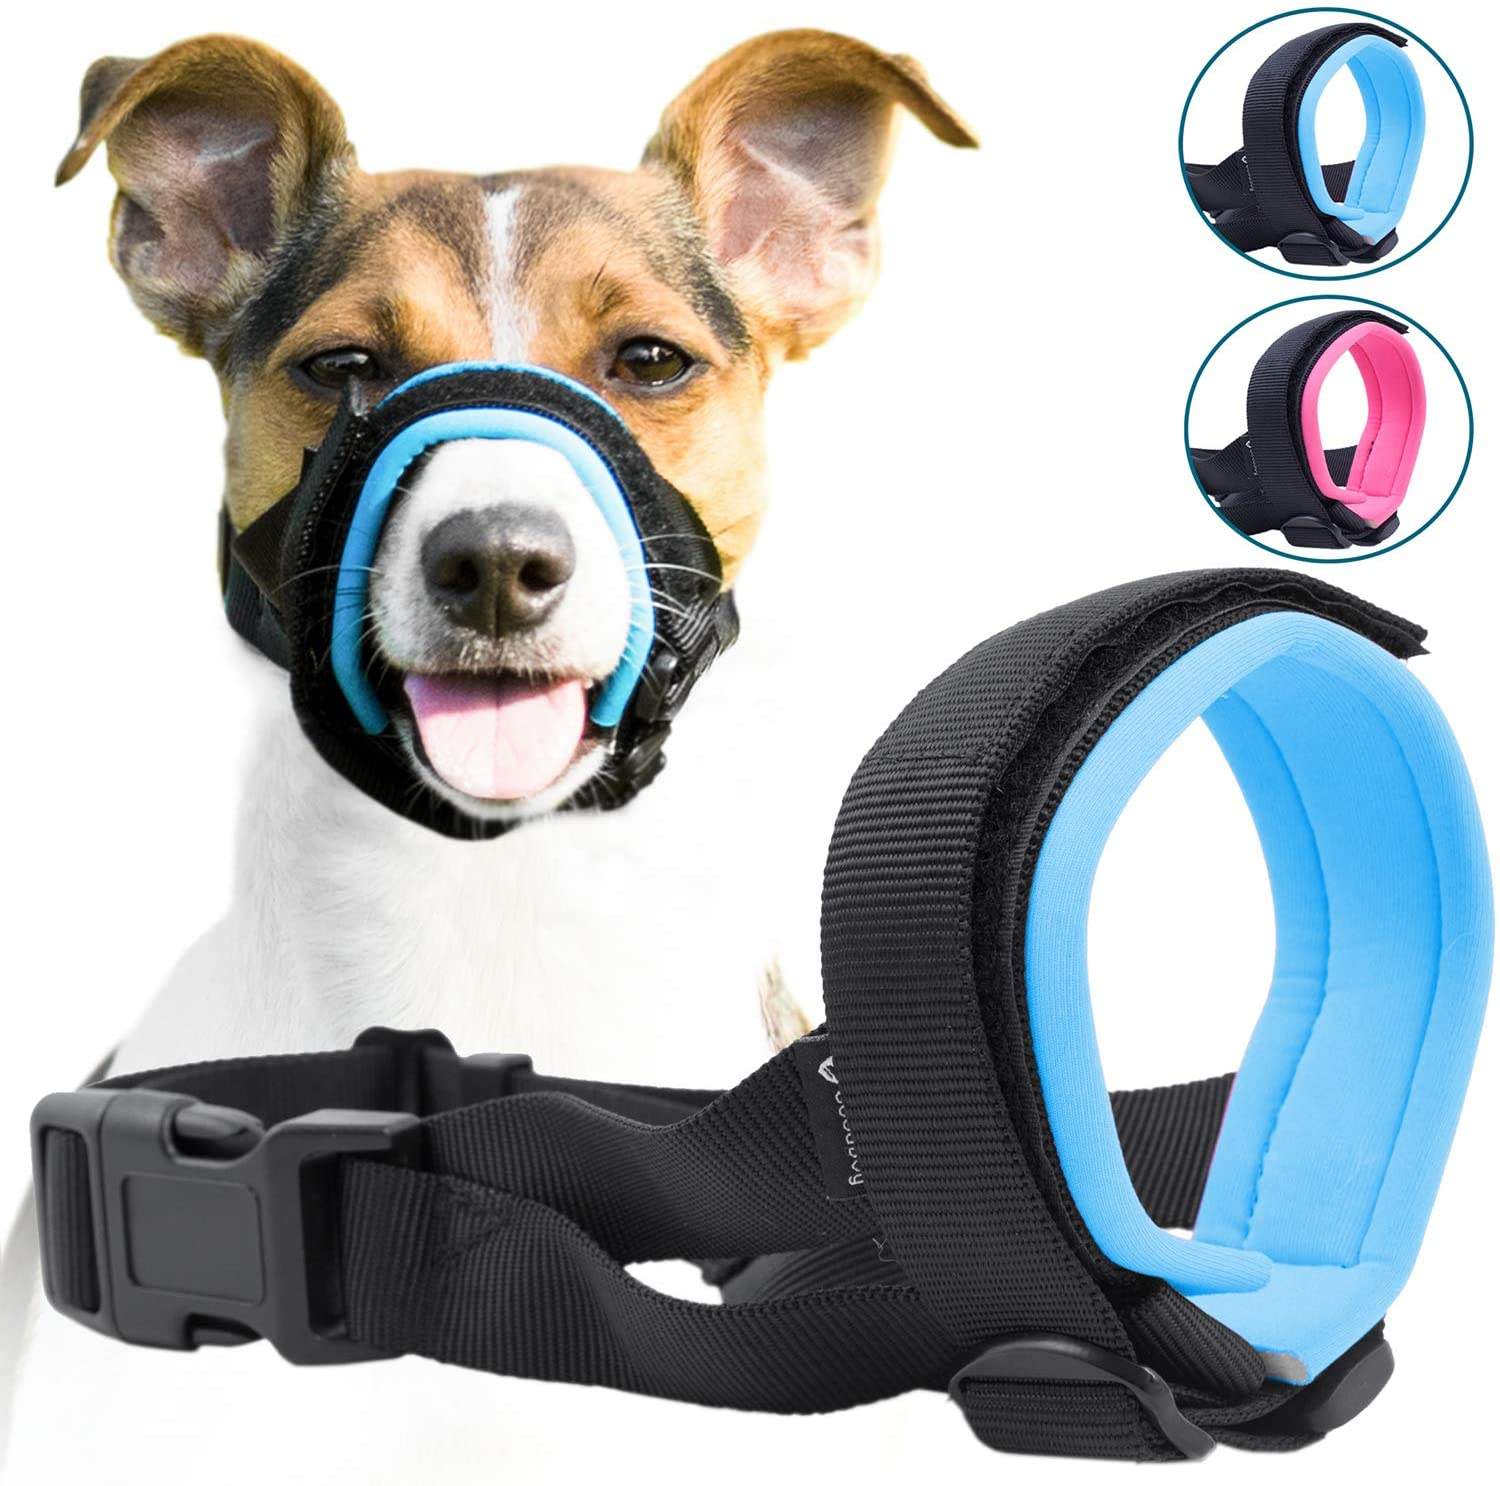 Goodboy Gentle Muzzle Guard for Dogs